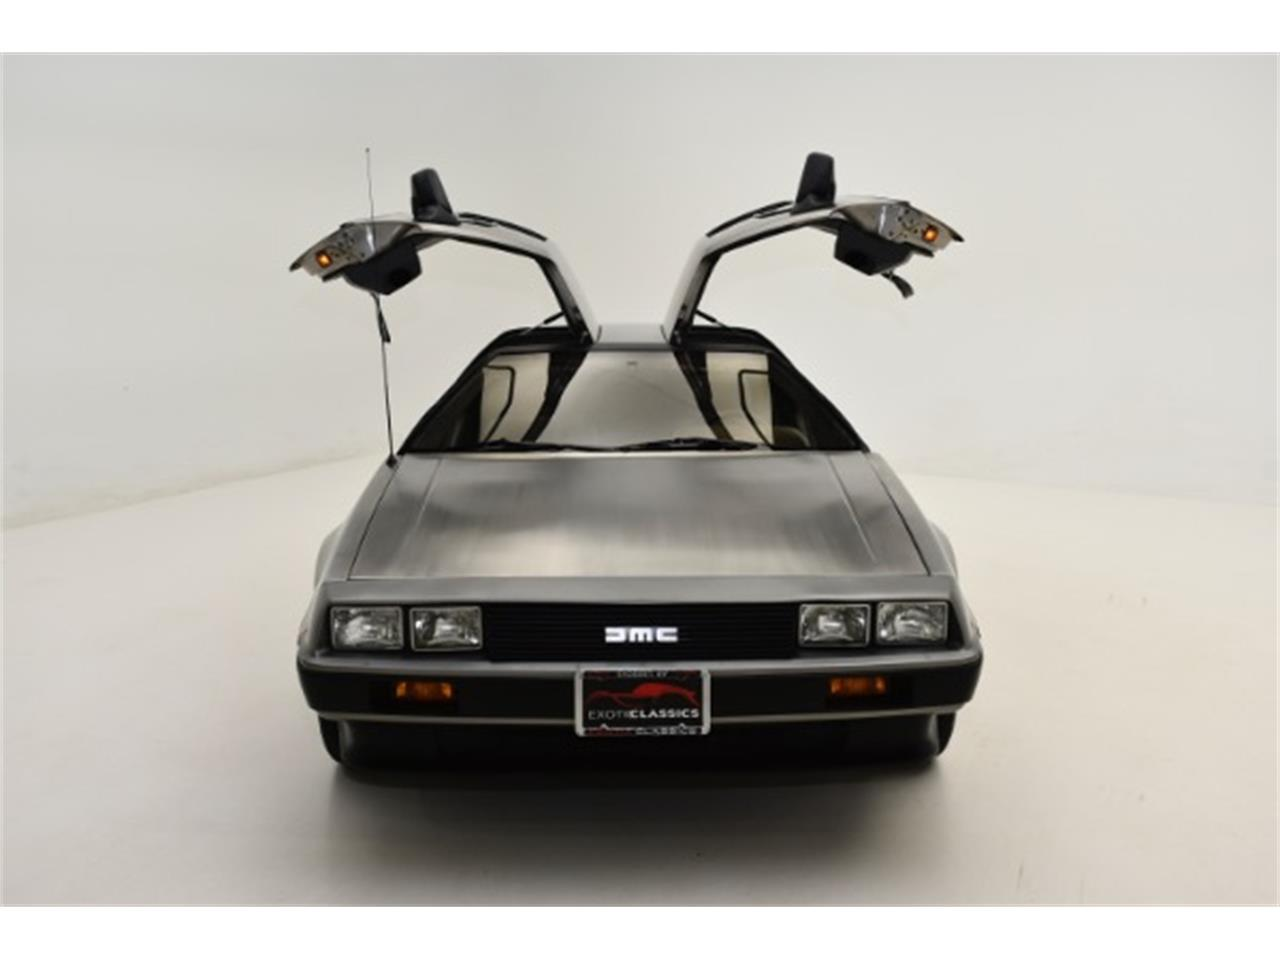 Large Picture of '81 DeLorean DMC-12 located in New York - $36,900.00 Offered by Champion Motors International - L5D0